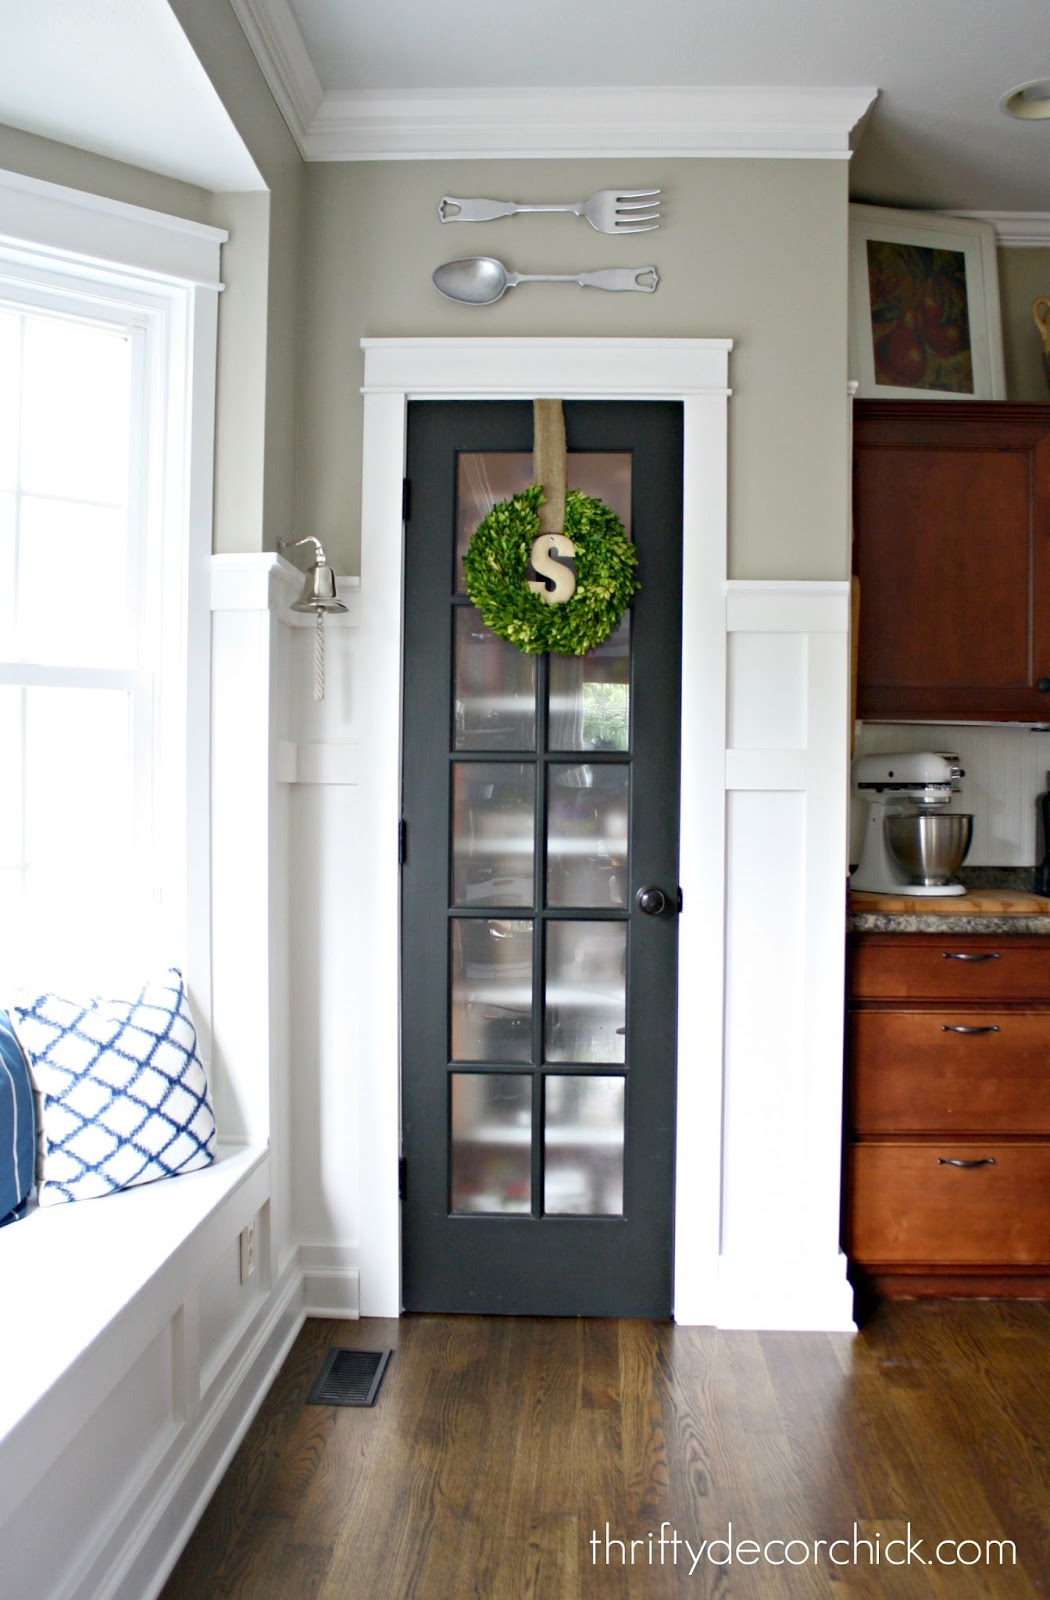 Boxwood werath hung on pantry door